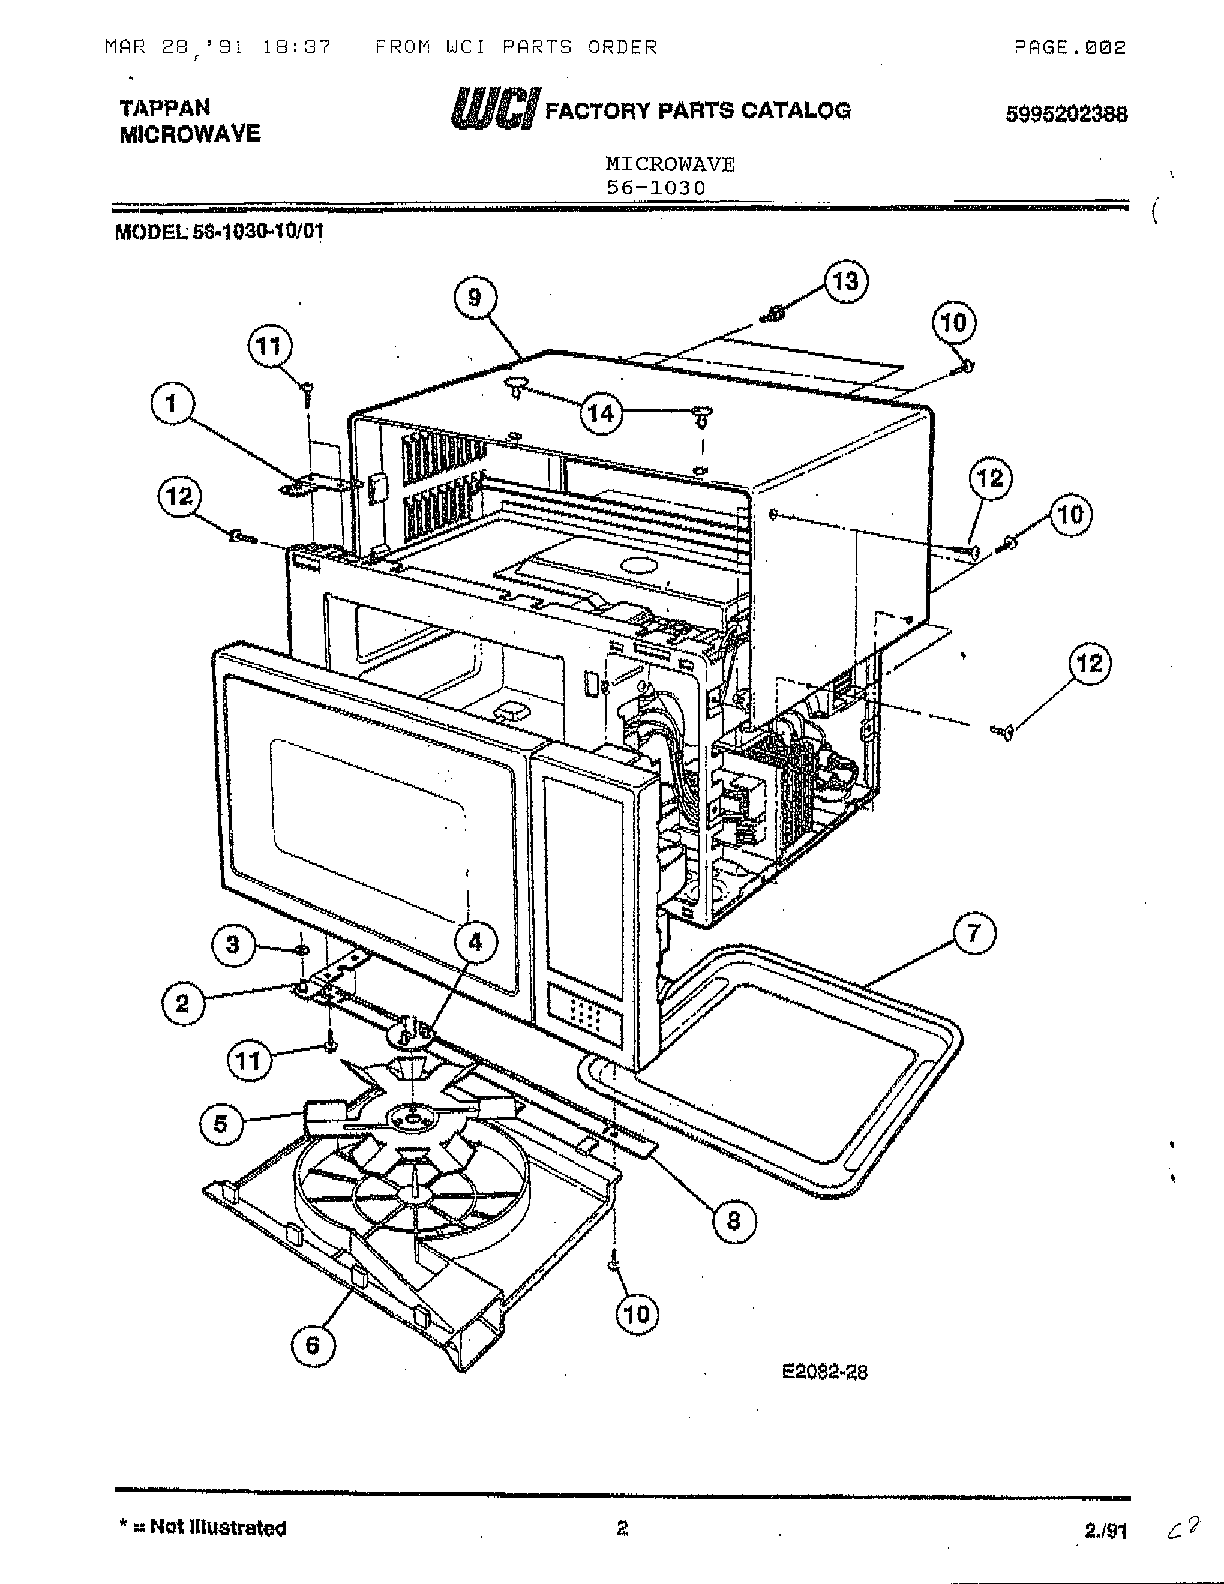 Accessories Diagram And Parts List For Kenmore Sewingmachineparts